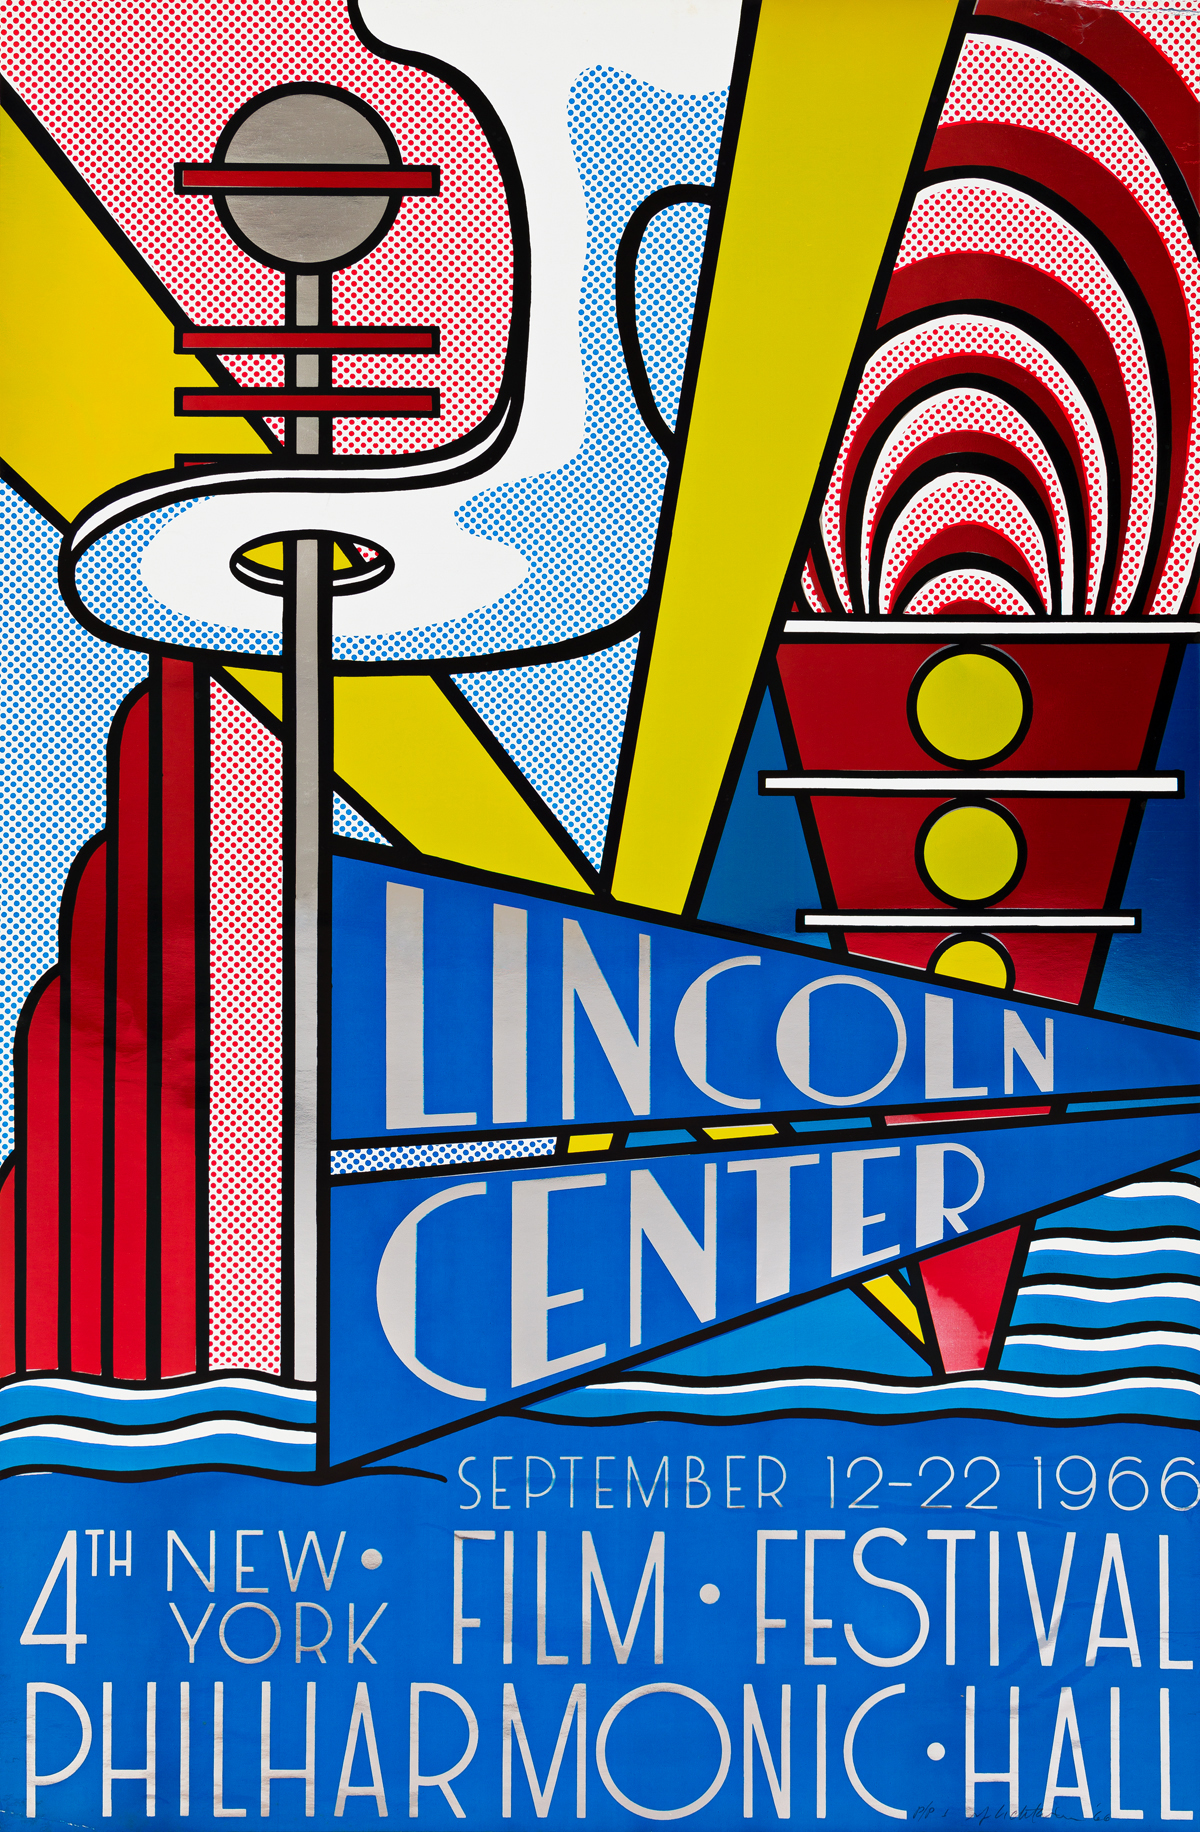 ROY LICHTENSTEIN Lincoln Center Poster.